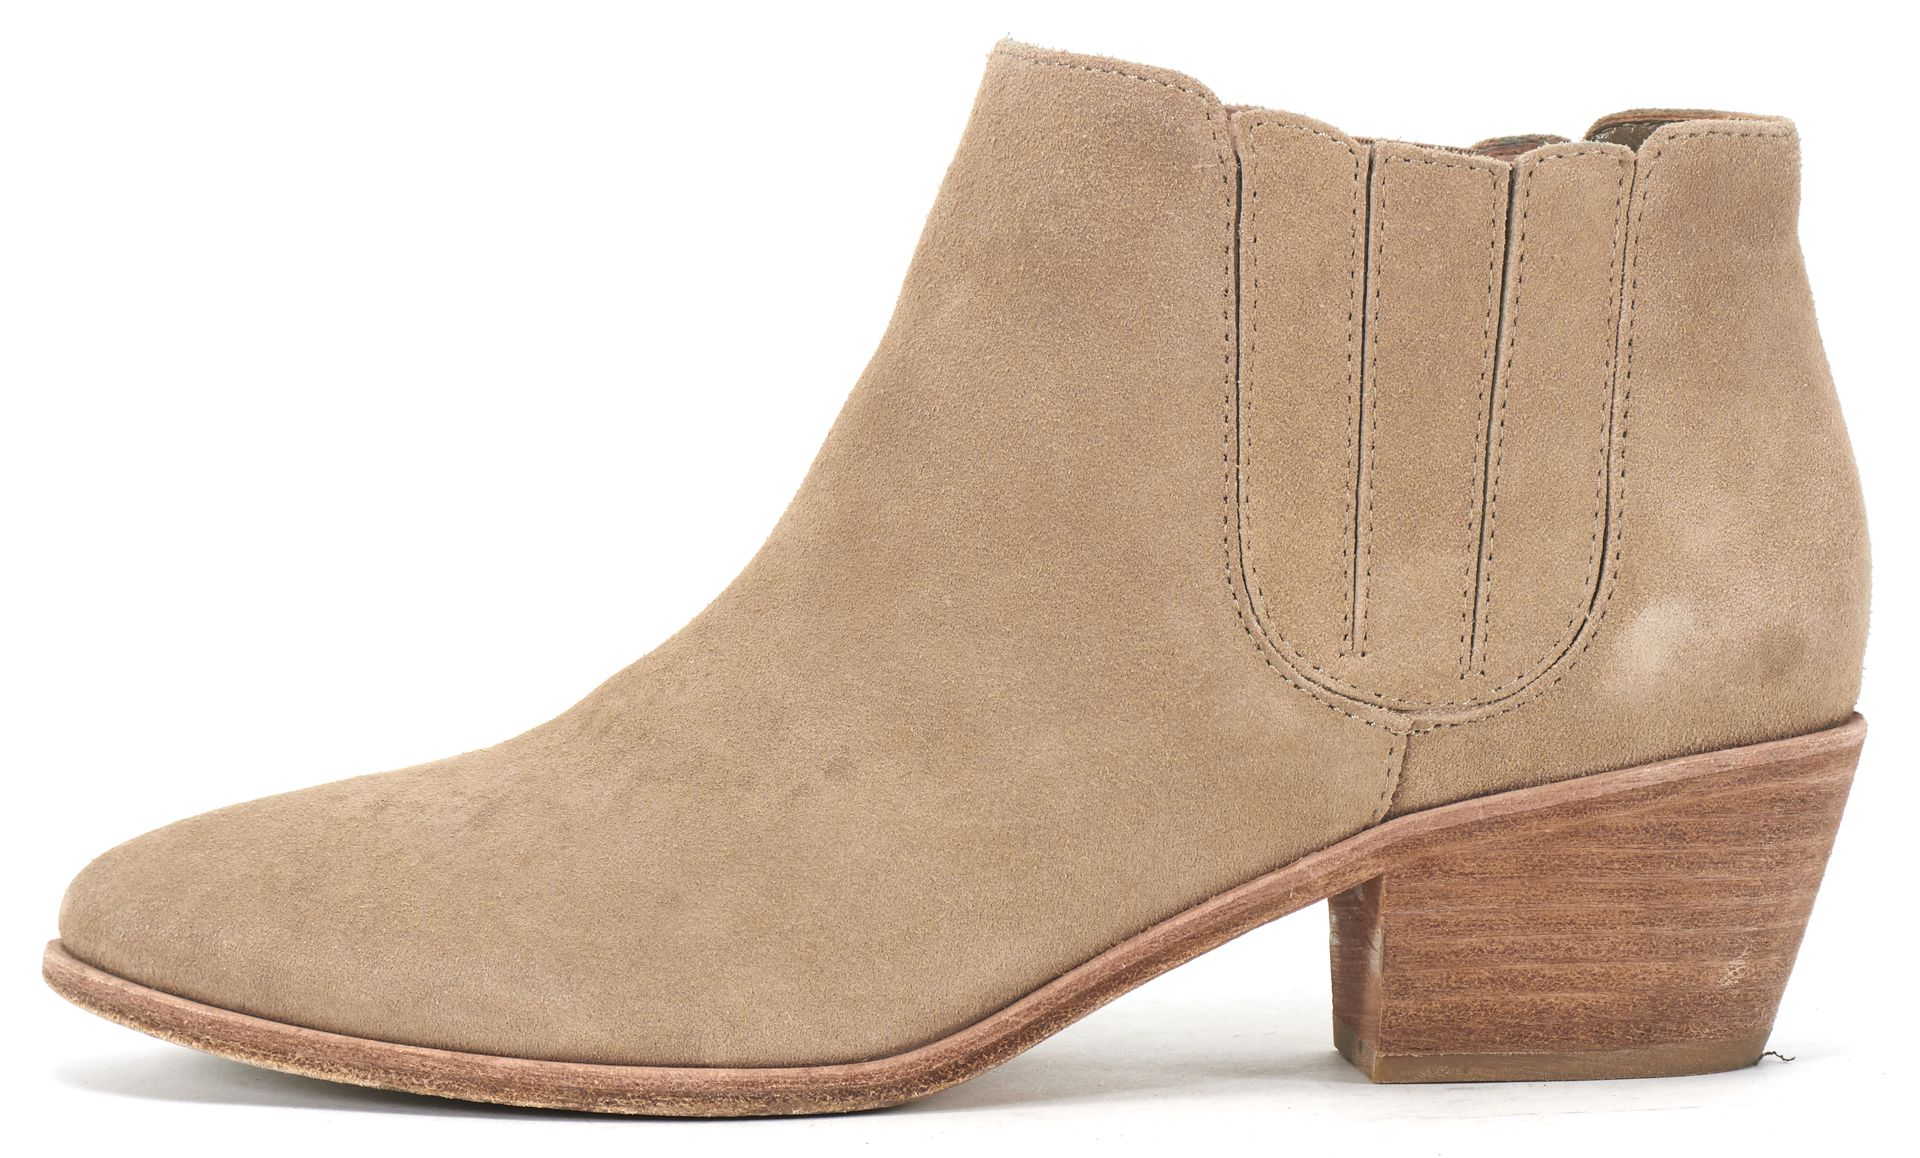 Joie Beige Suede Almond Toe Stacked Low Heel Ankle Boots ...